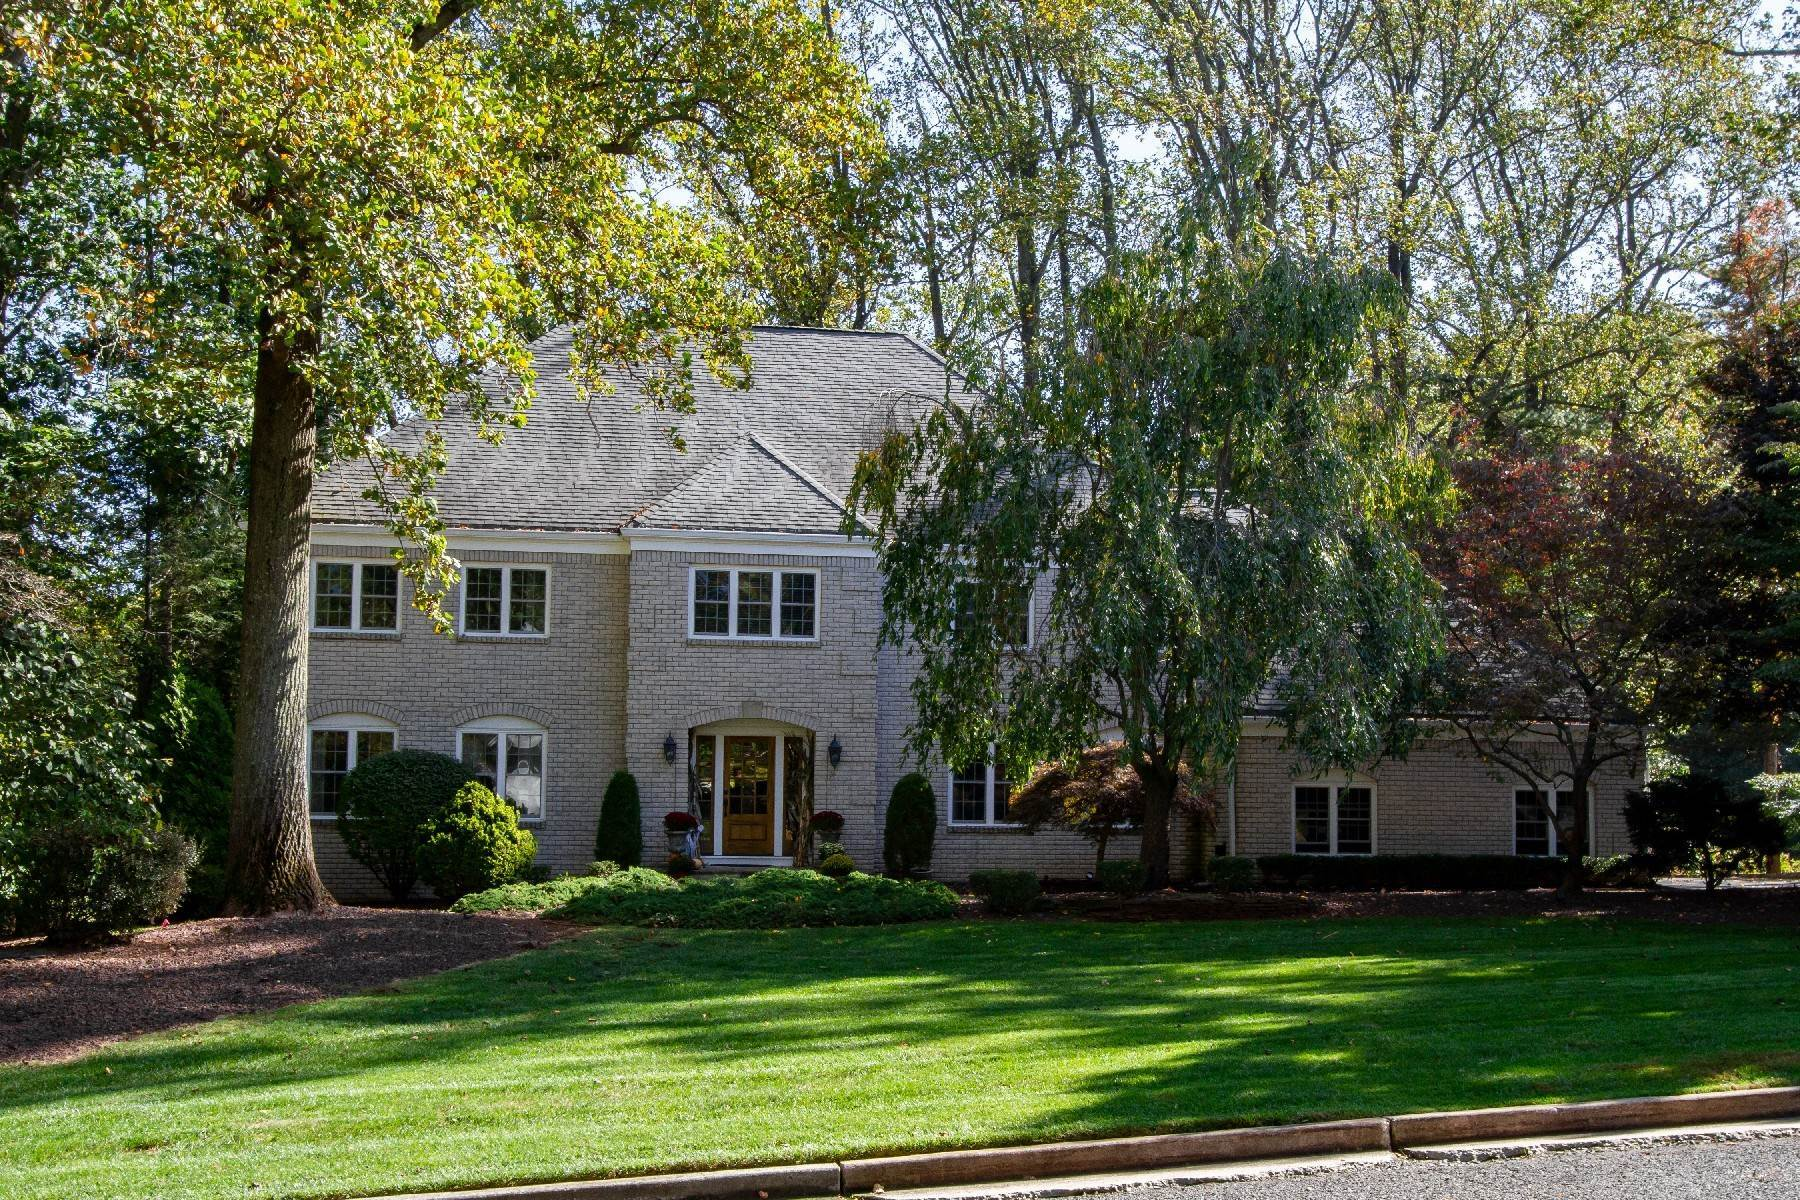 Single Family Homes for Sale at Spectacular Custom Home 11 Fieldpoint Dr Holmdel, New Jersey 07733 United States